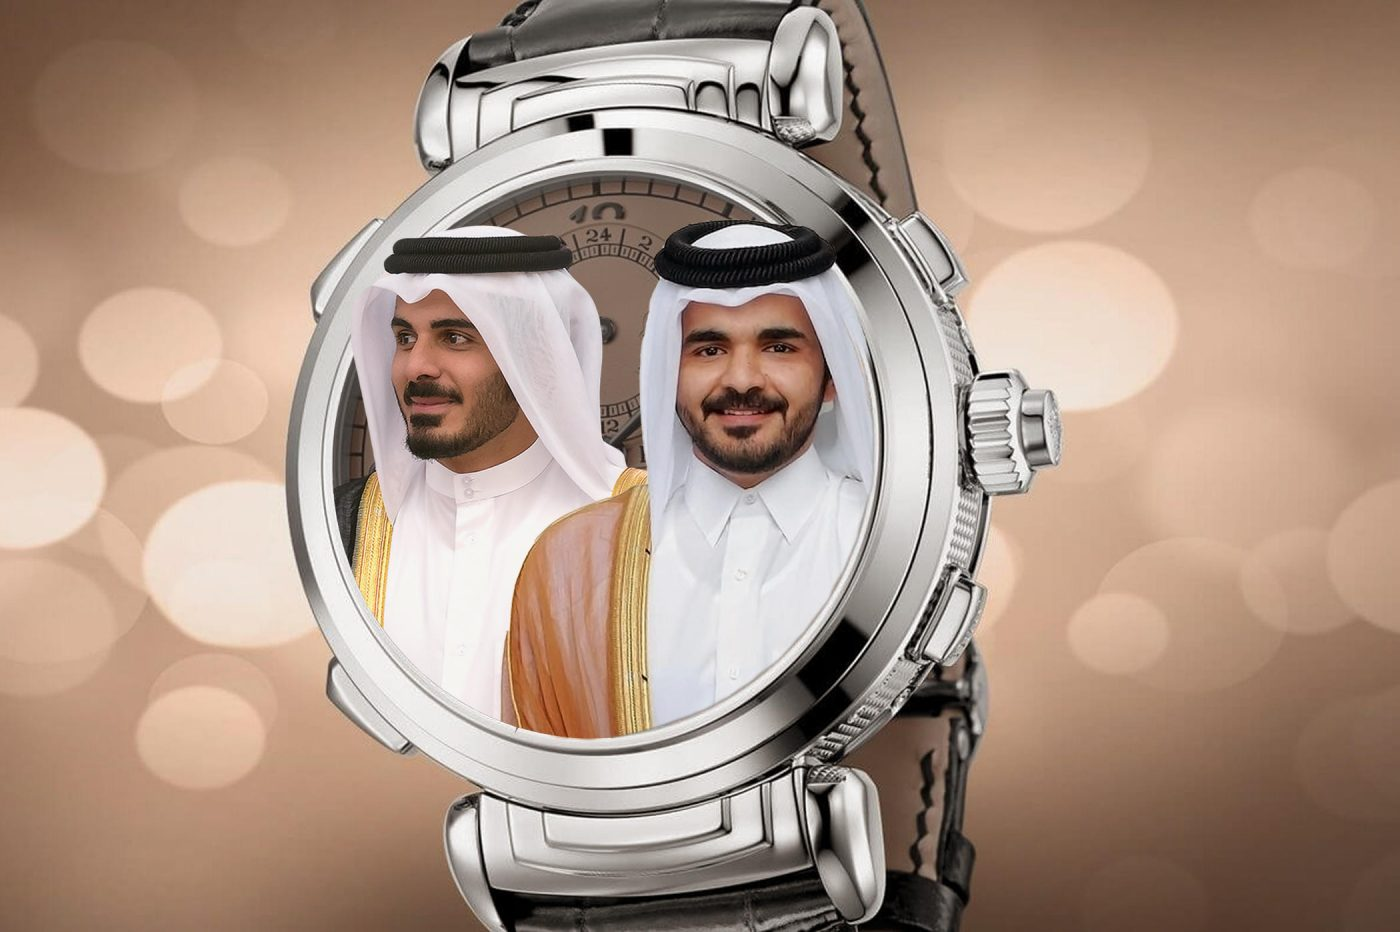 Timebloid Petro-watches aka what is worn by Qatar sheikh royalties – Joaan Bin Hamad & Khalifa Bin Hamad